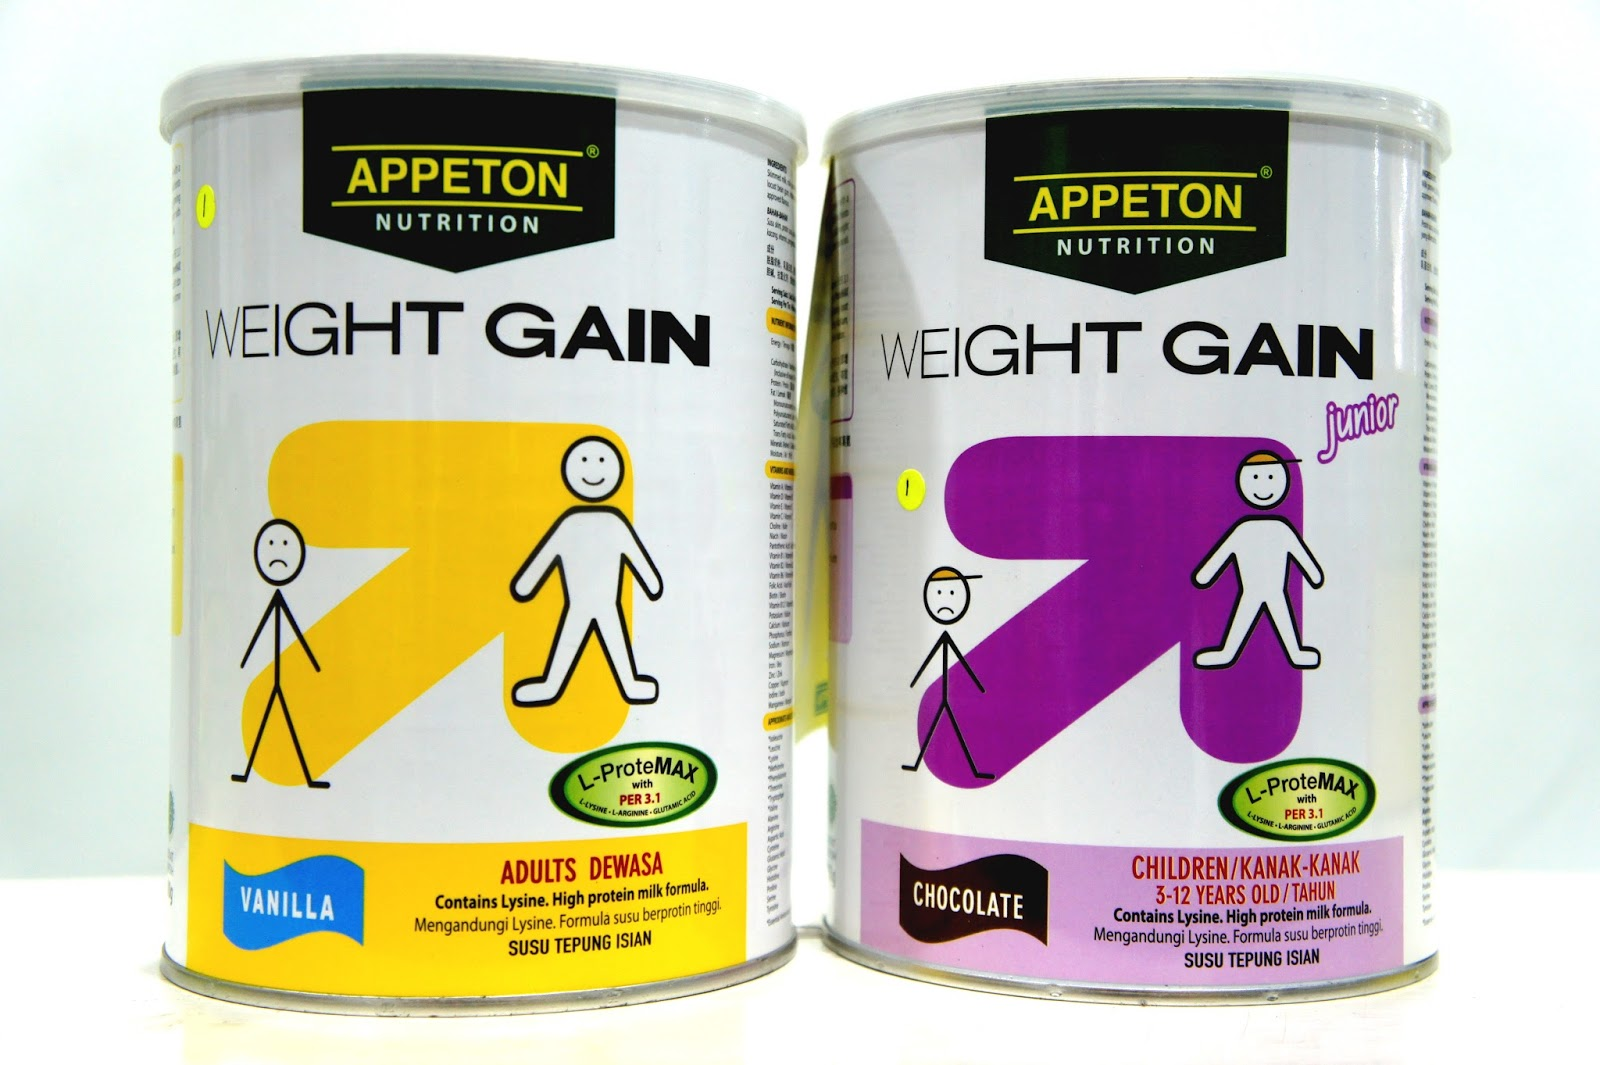 APPETON WEIGHT GAIN ADULTS